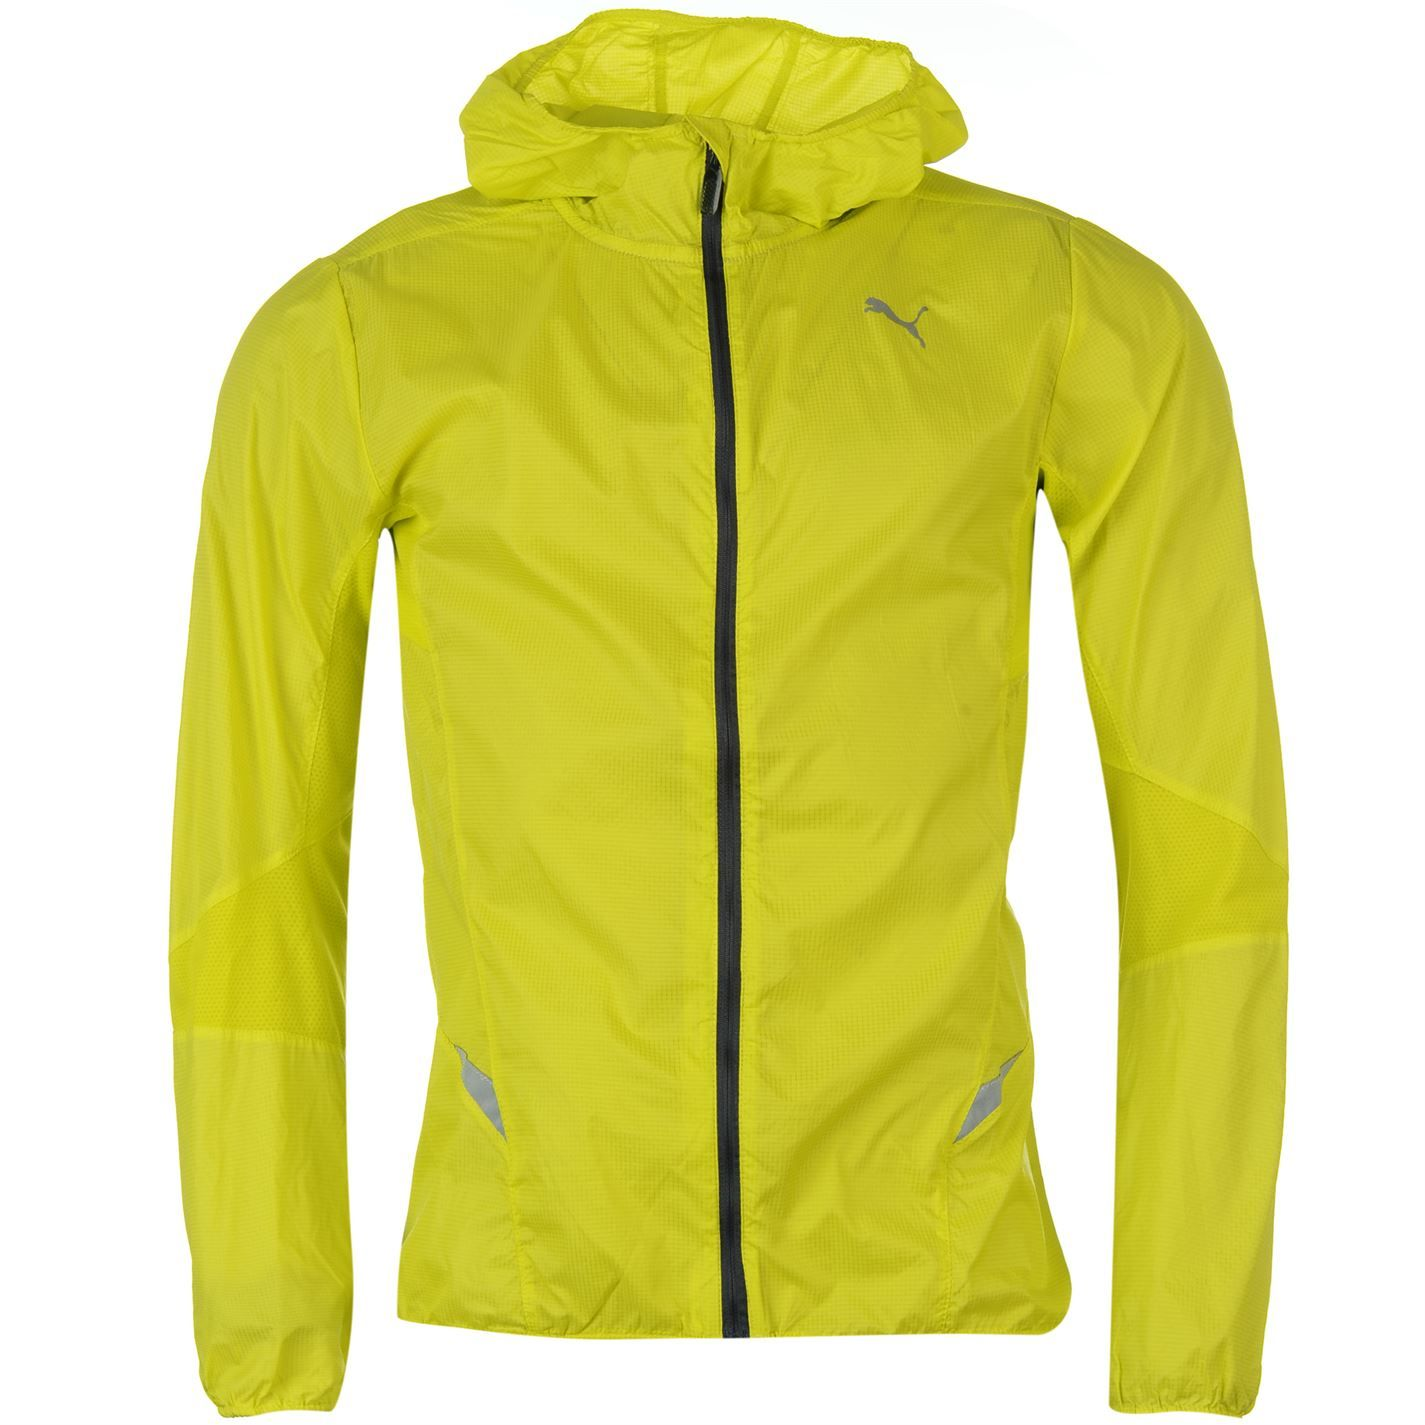 puma outfits mens. puma lightweight hooded mens running jacket - yellow google search outfits